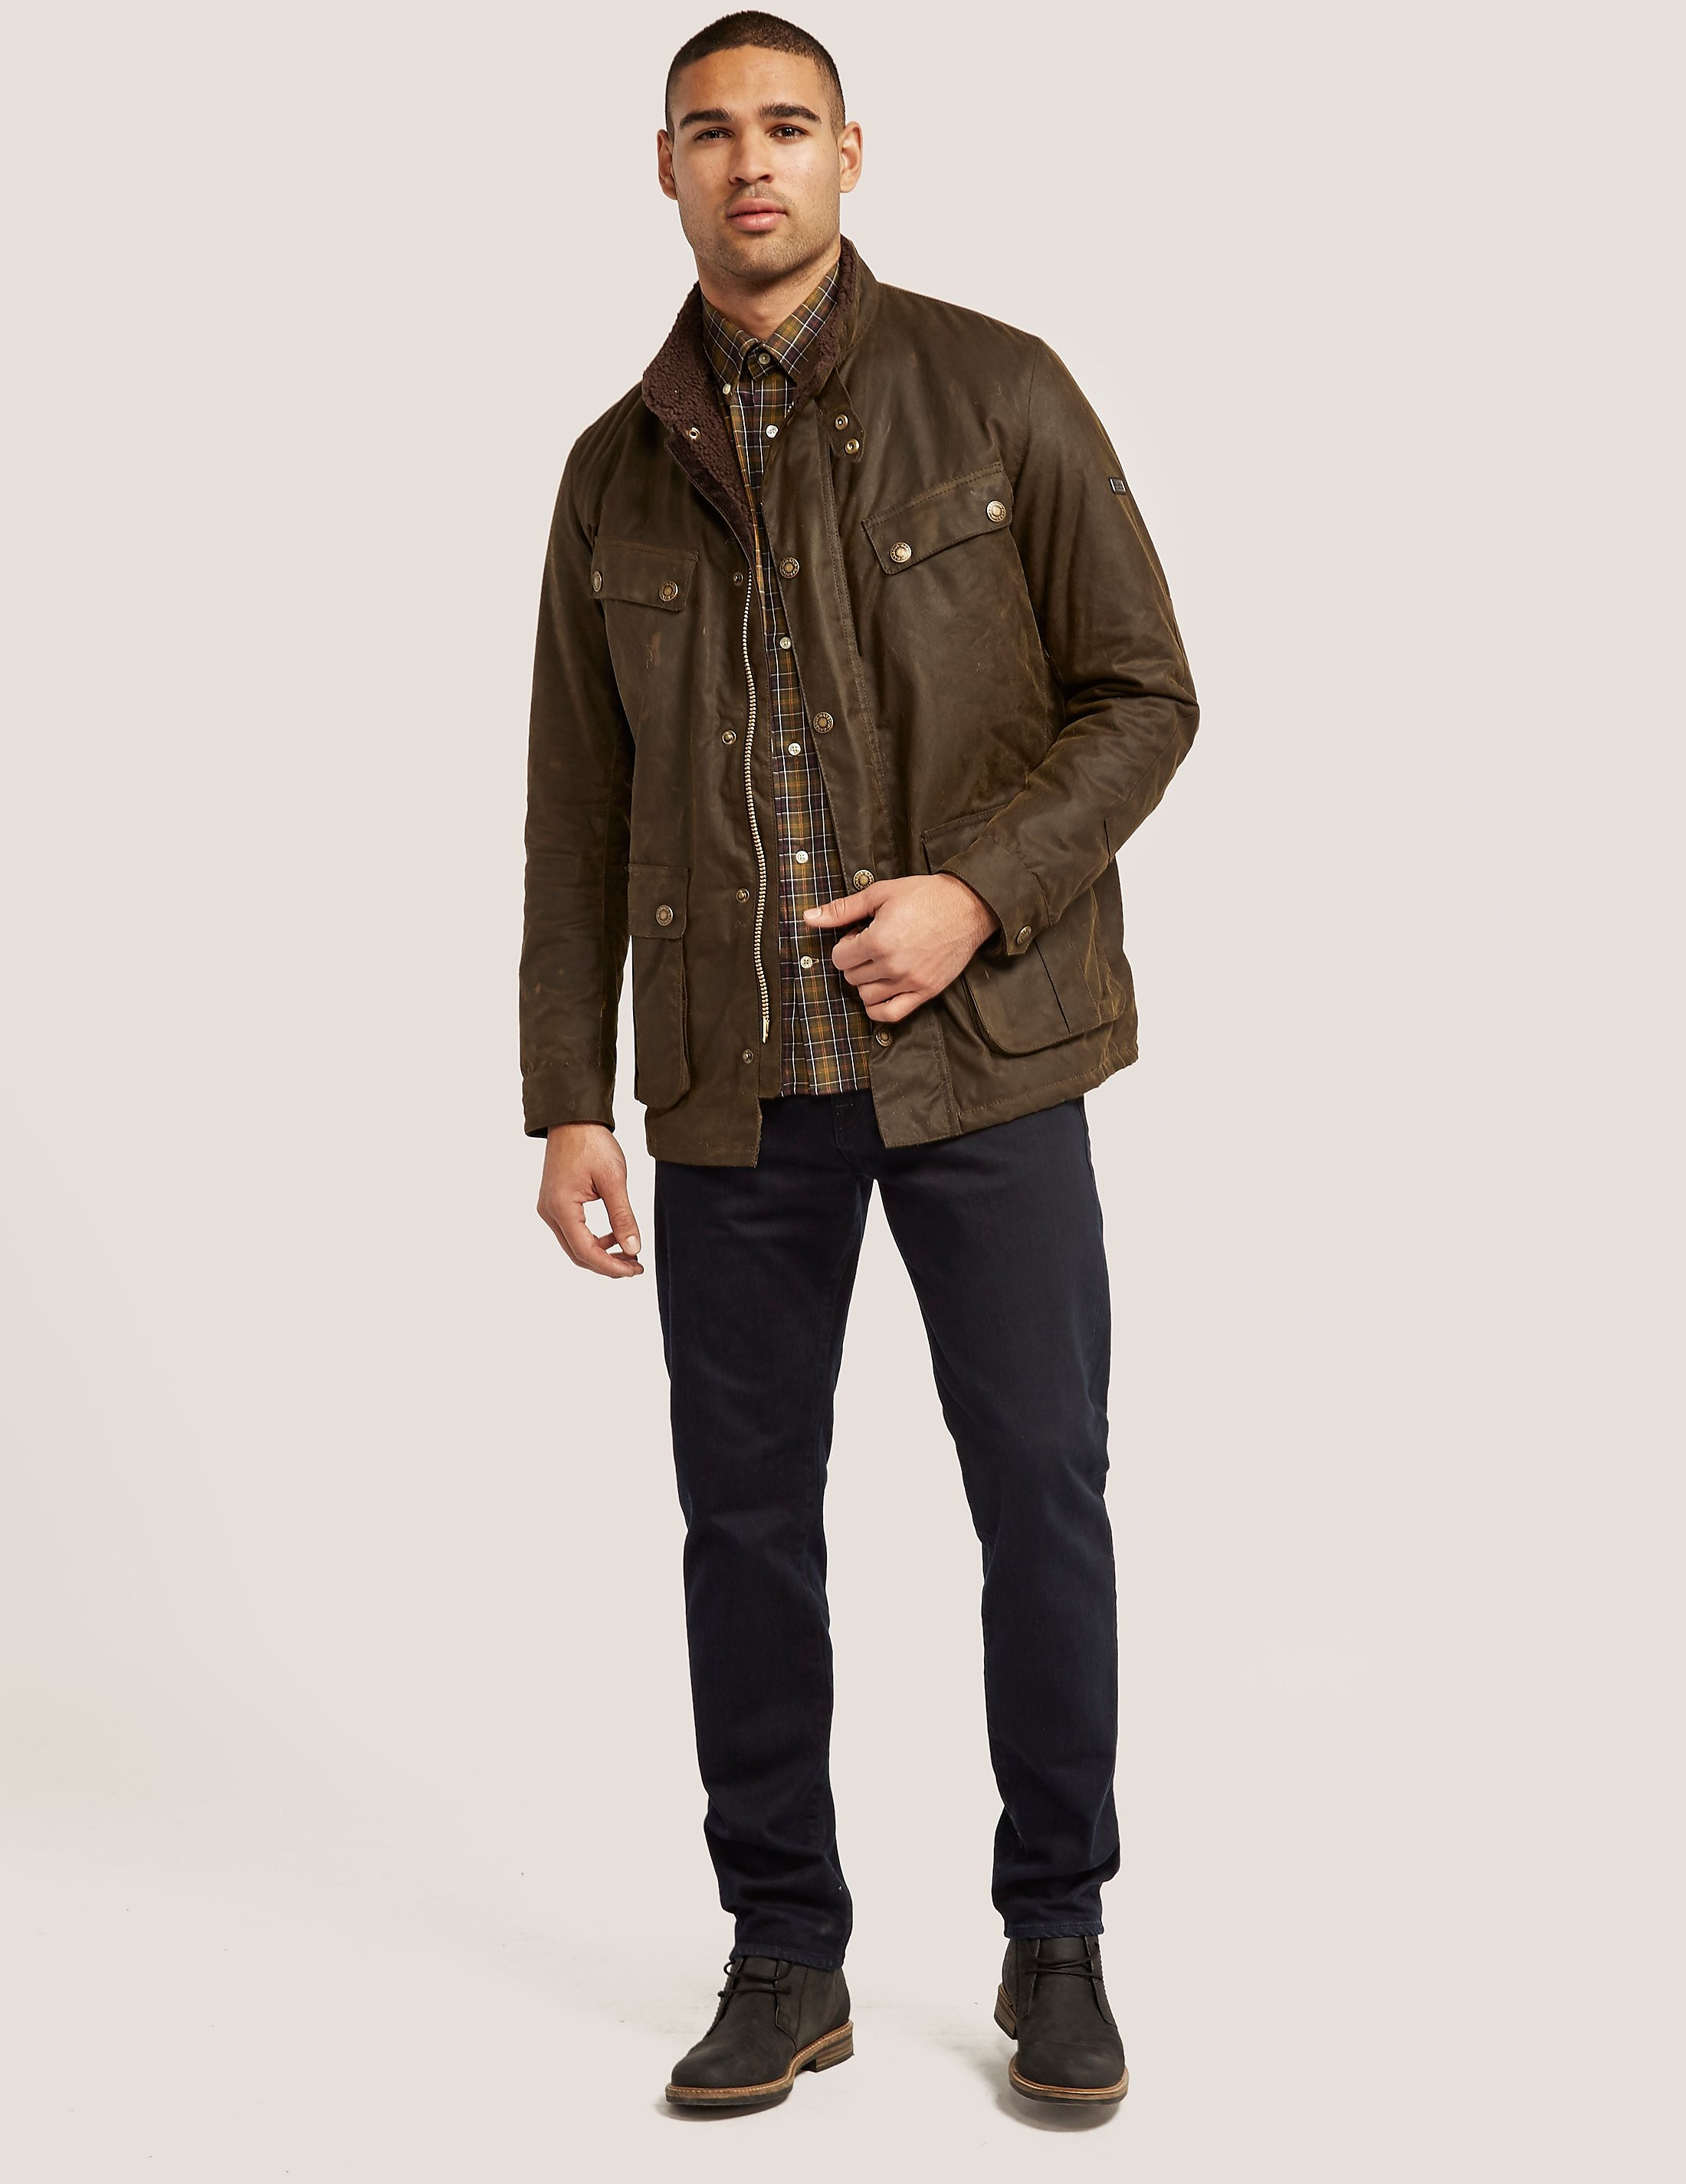 Barbour Earl 30 Year Special Jacket